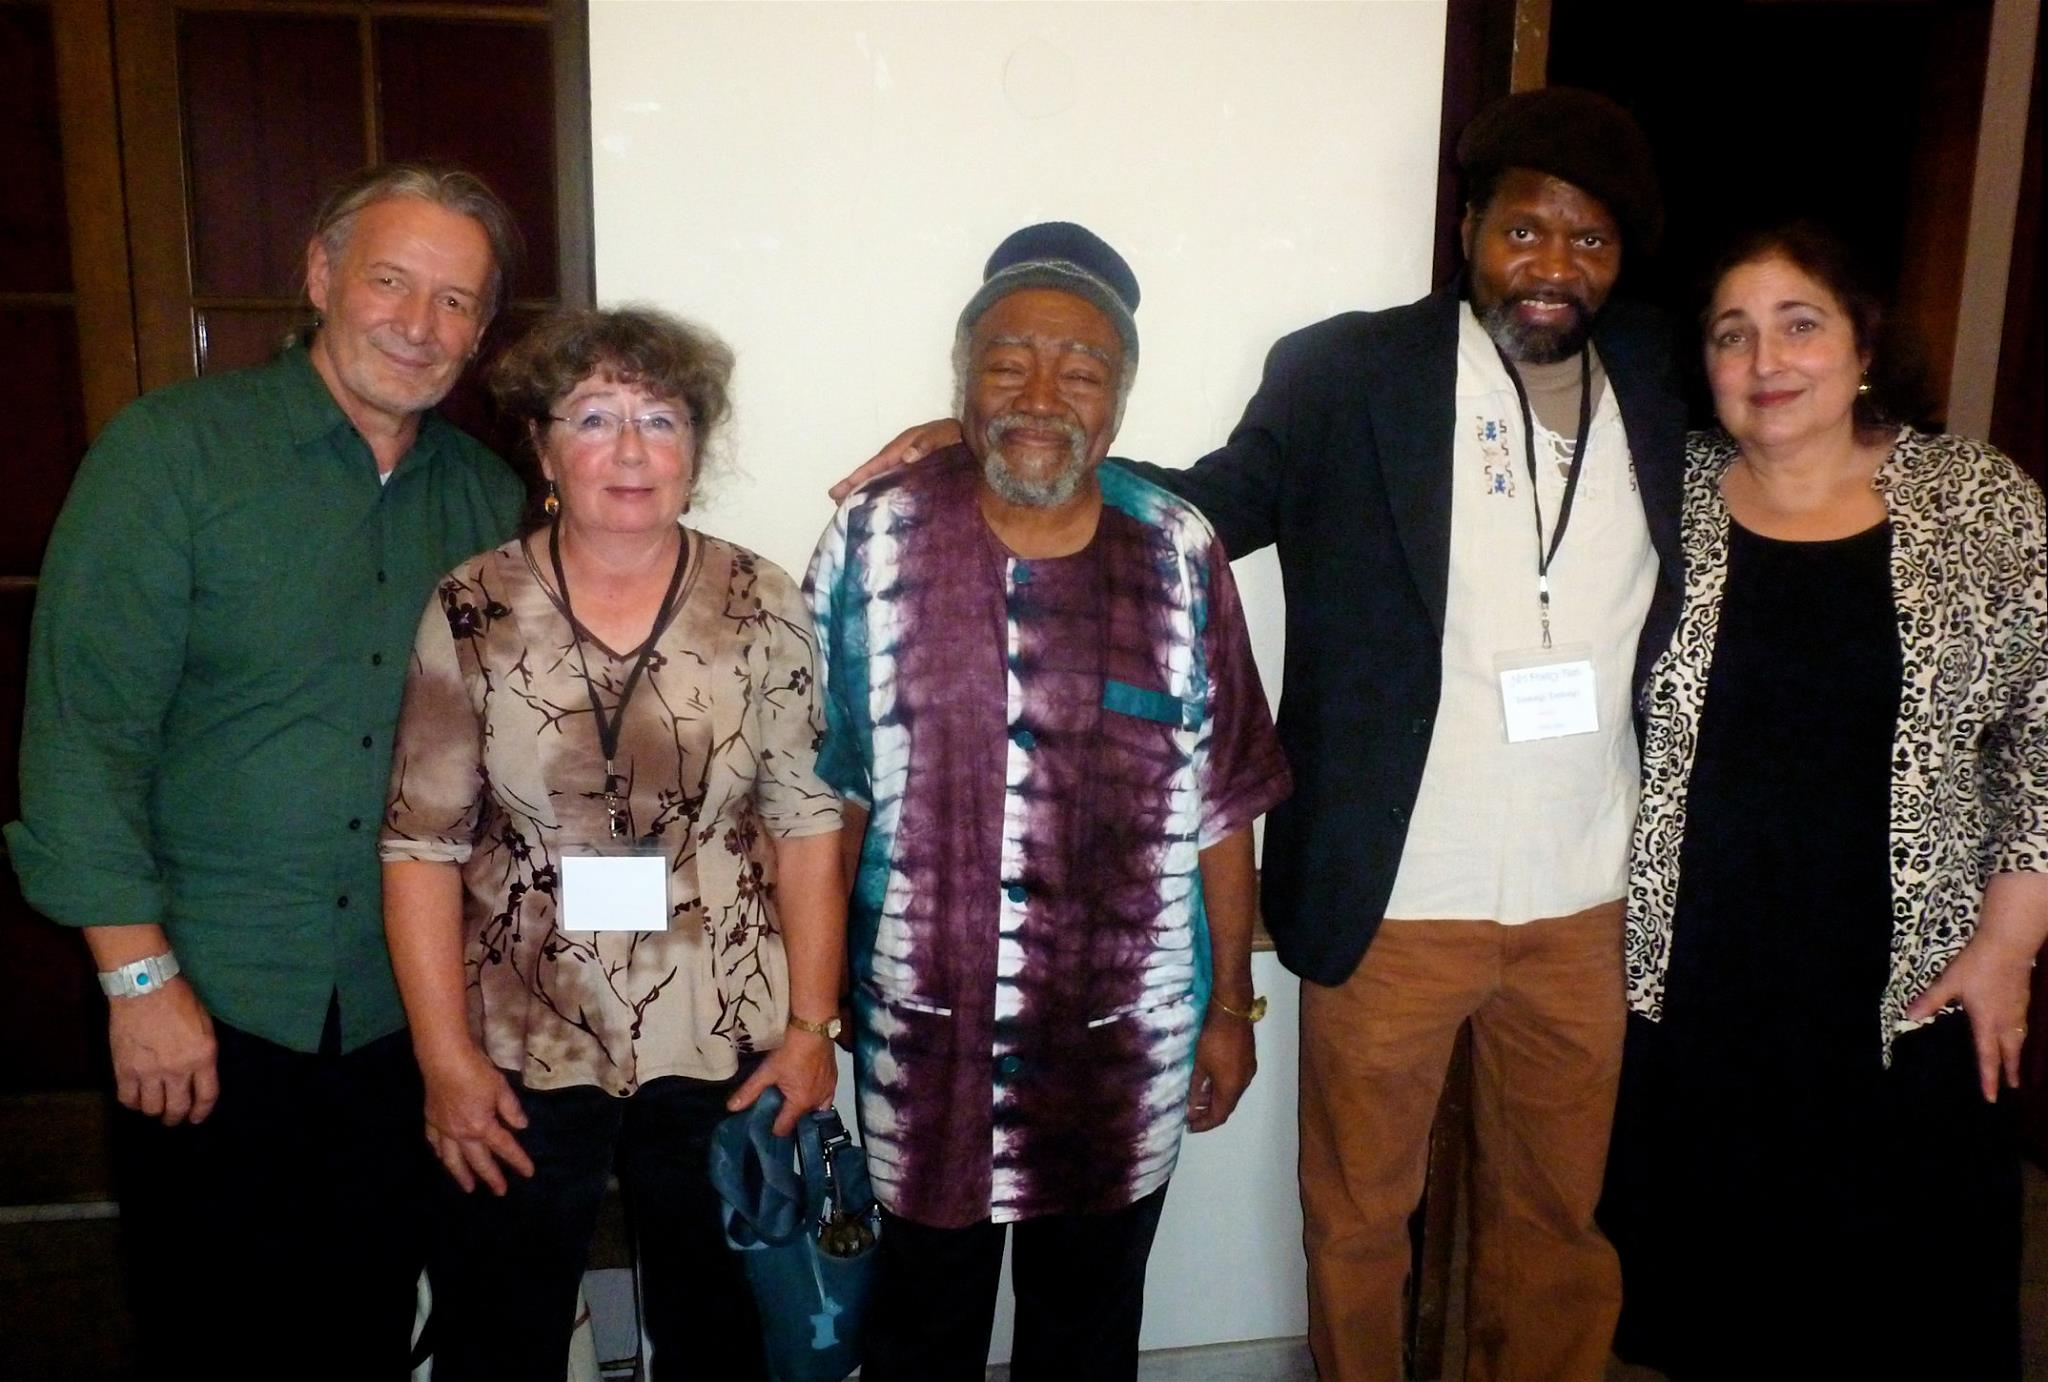 Liberation Poetry Collective poets Richard Cambridge (from the left), Patricia Frisela, Askia Touré, Tontongi and Jill Netchinsky at New Hampshire's first poetry festival in 2015.